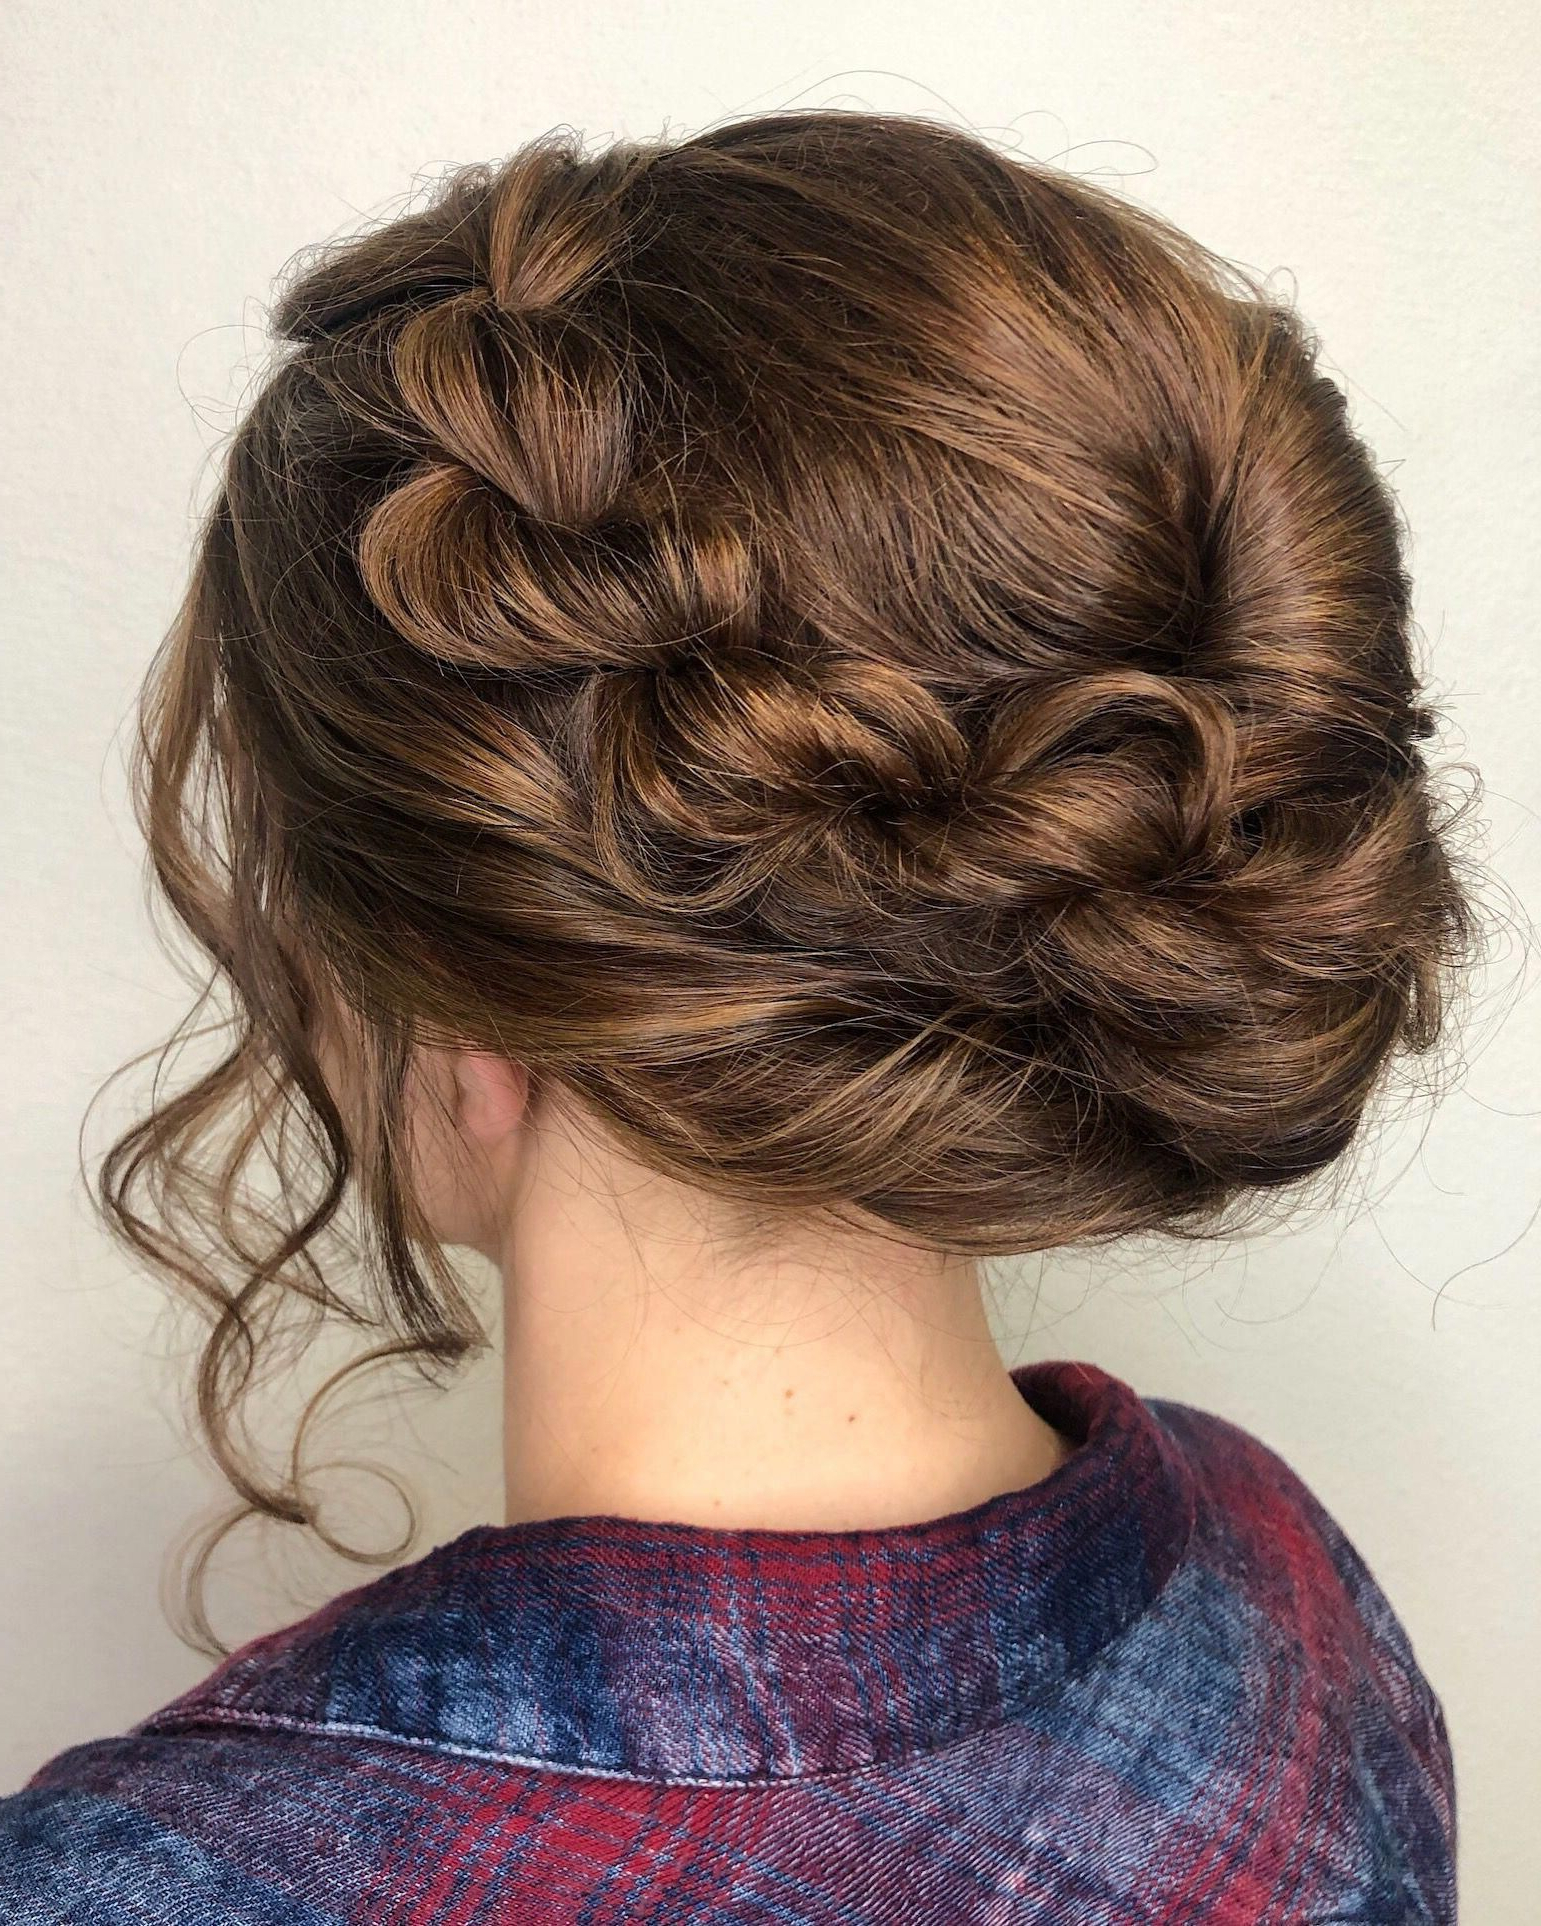 Braided Updo Style For Holiday Party Or Wedding Pertaining To Preferred Vintage Inspired Braided Updo Hairstyles (View 5 of 20)